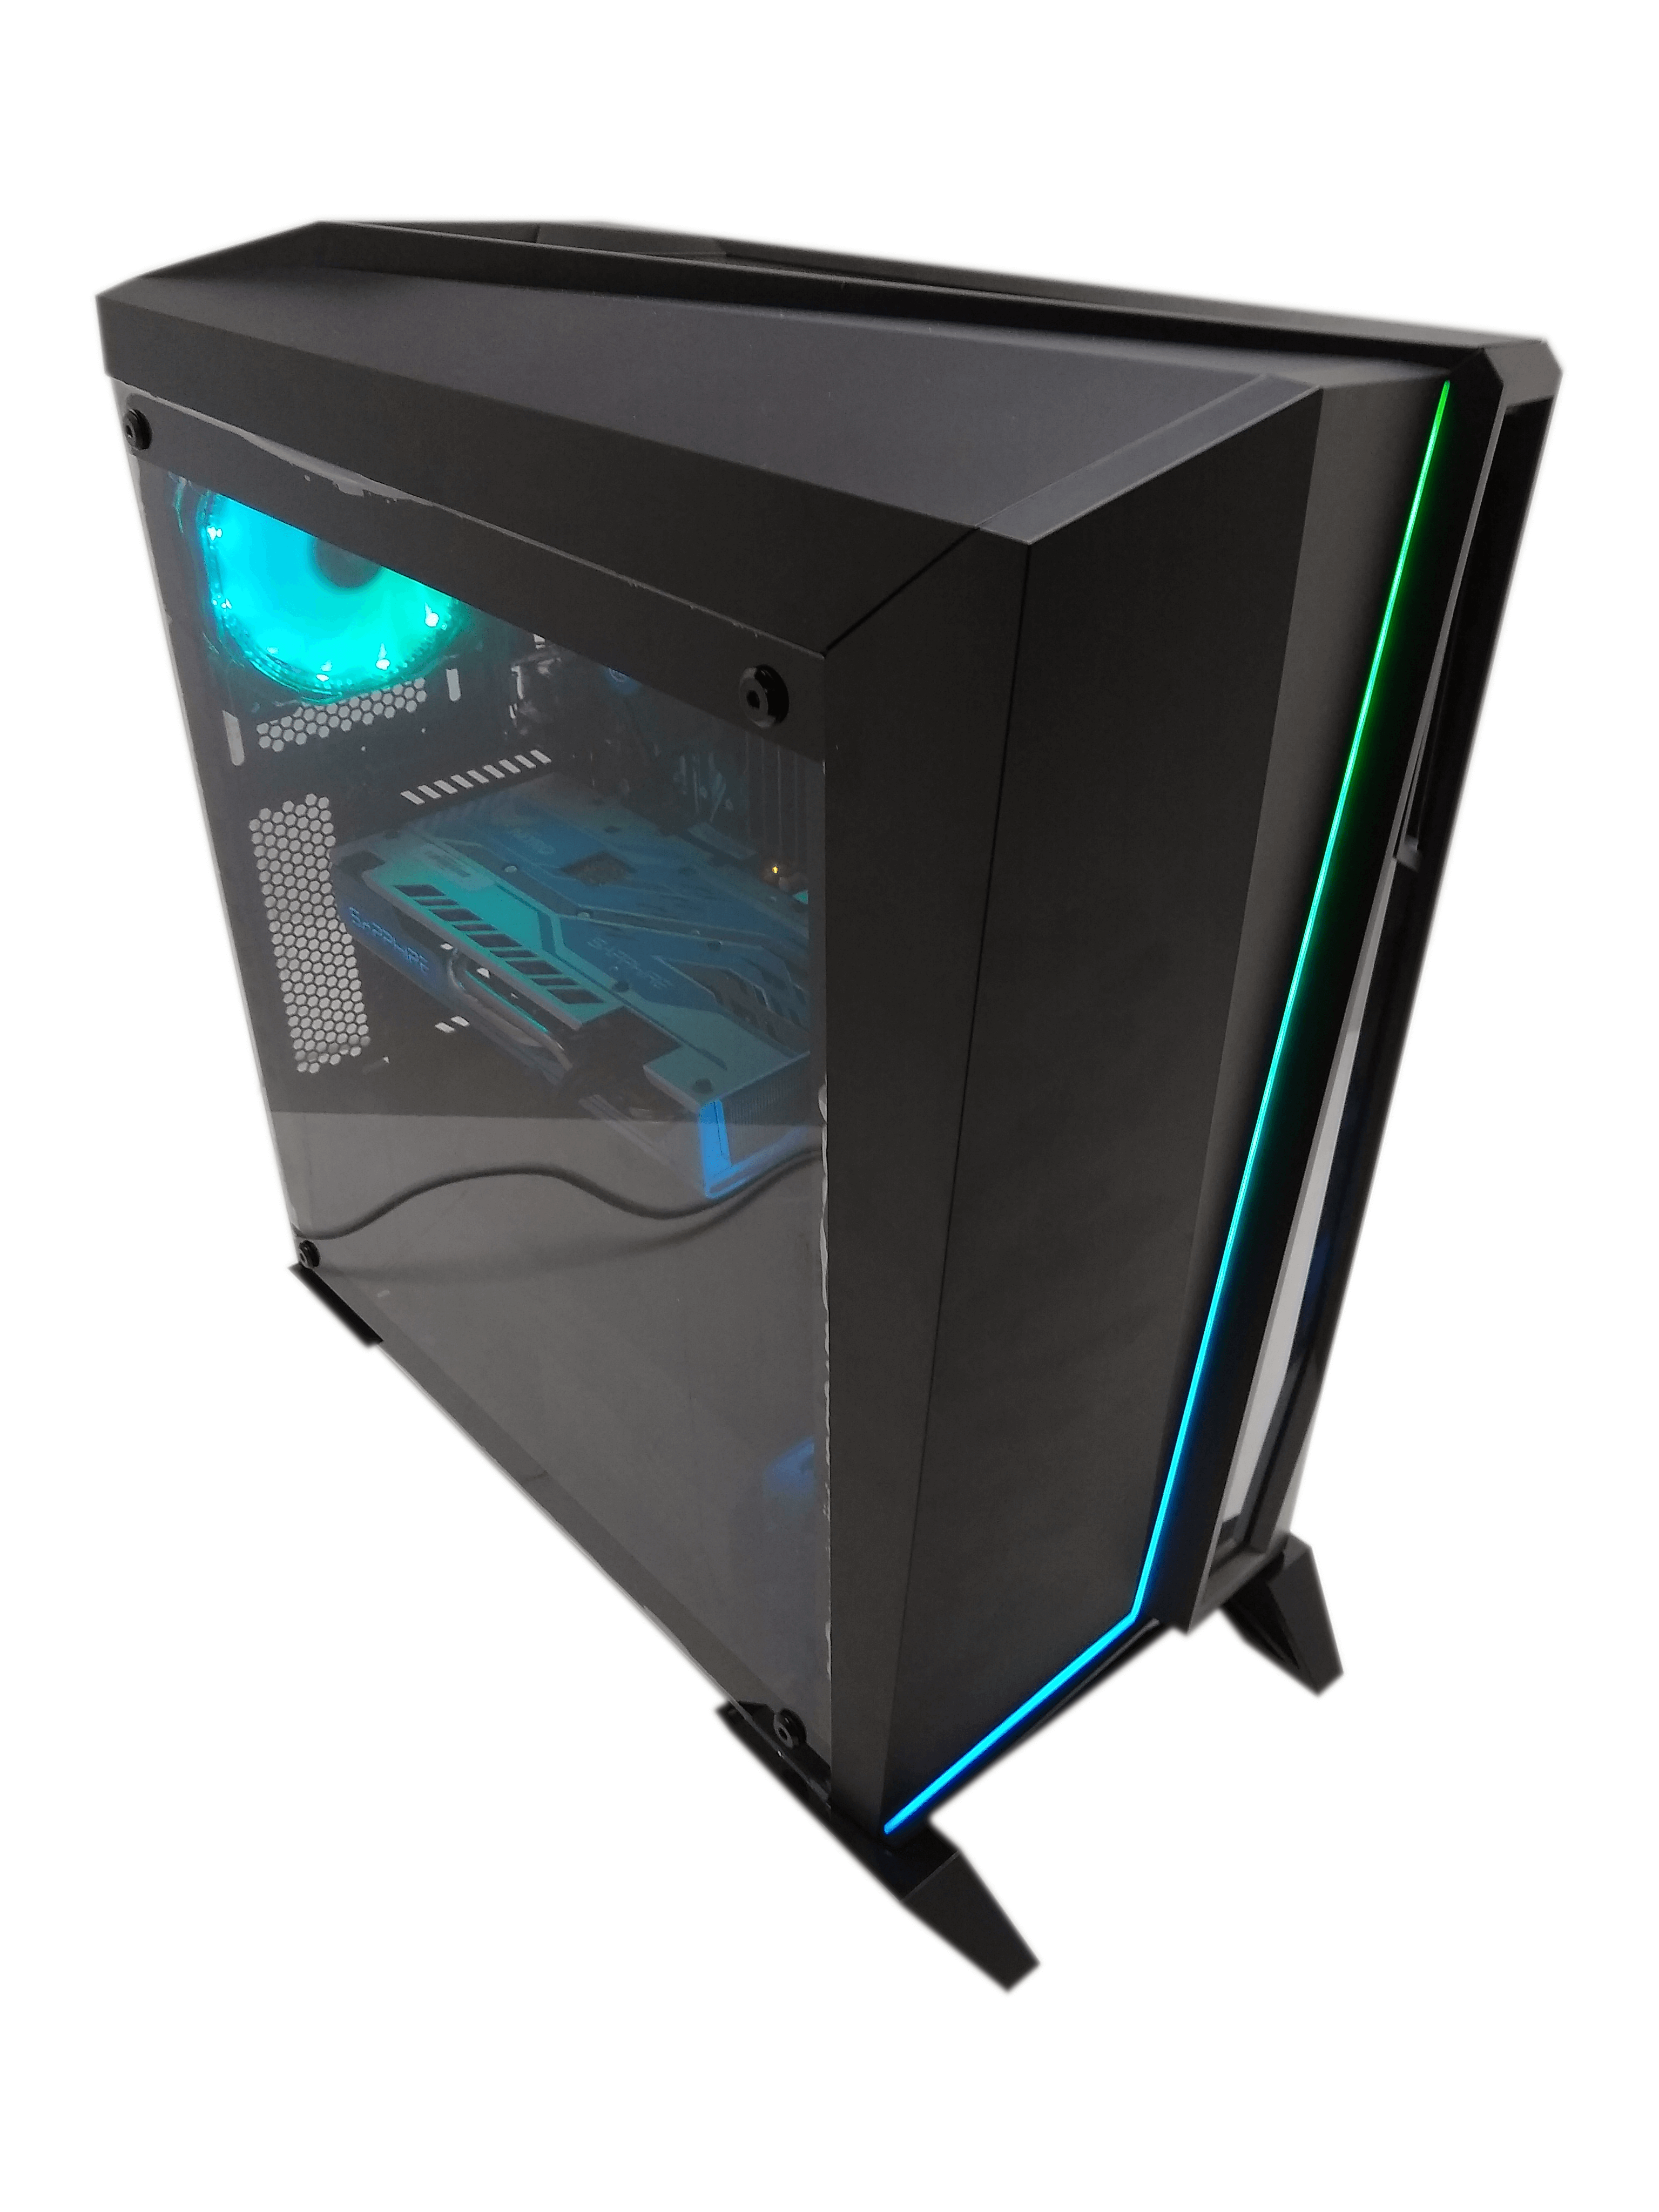 INTEXPC MYSTIC I7-6700 3.4 / 16 GB DDR4 / 480 GB SSD NOWY + 500 GB HDD / WINDOWS 10 PRO / RADEON RX580 8GB